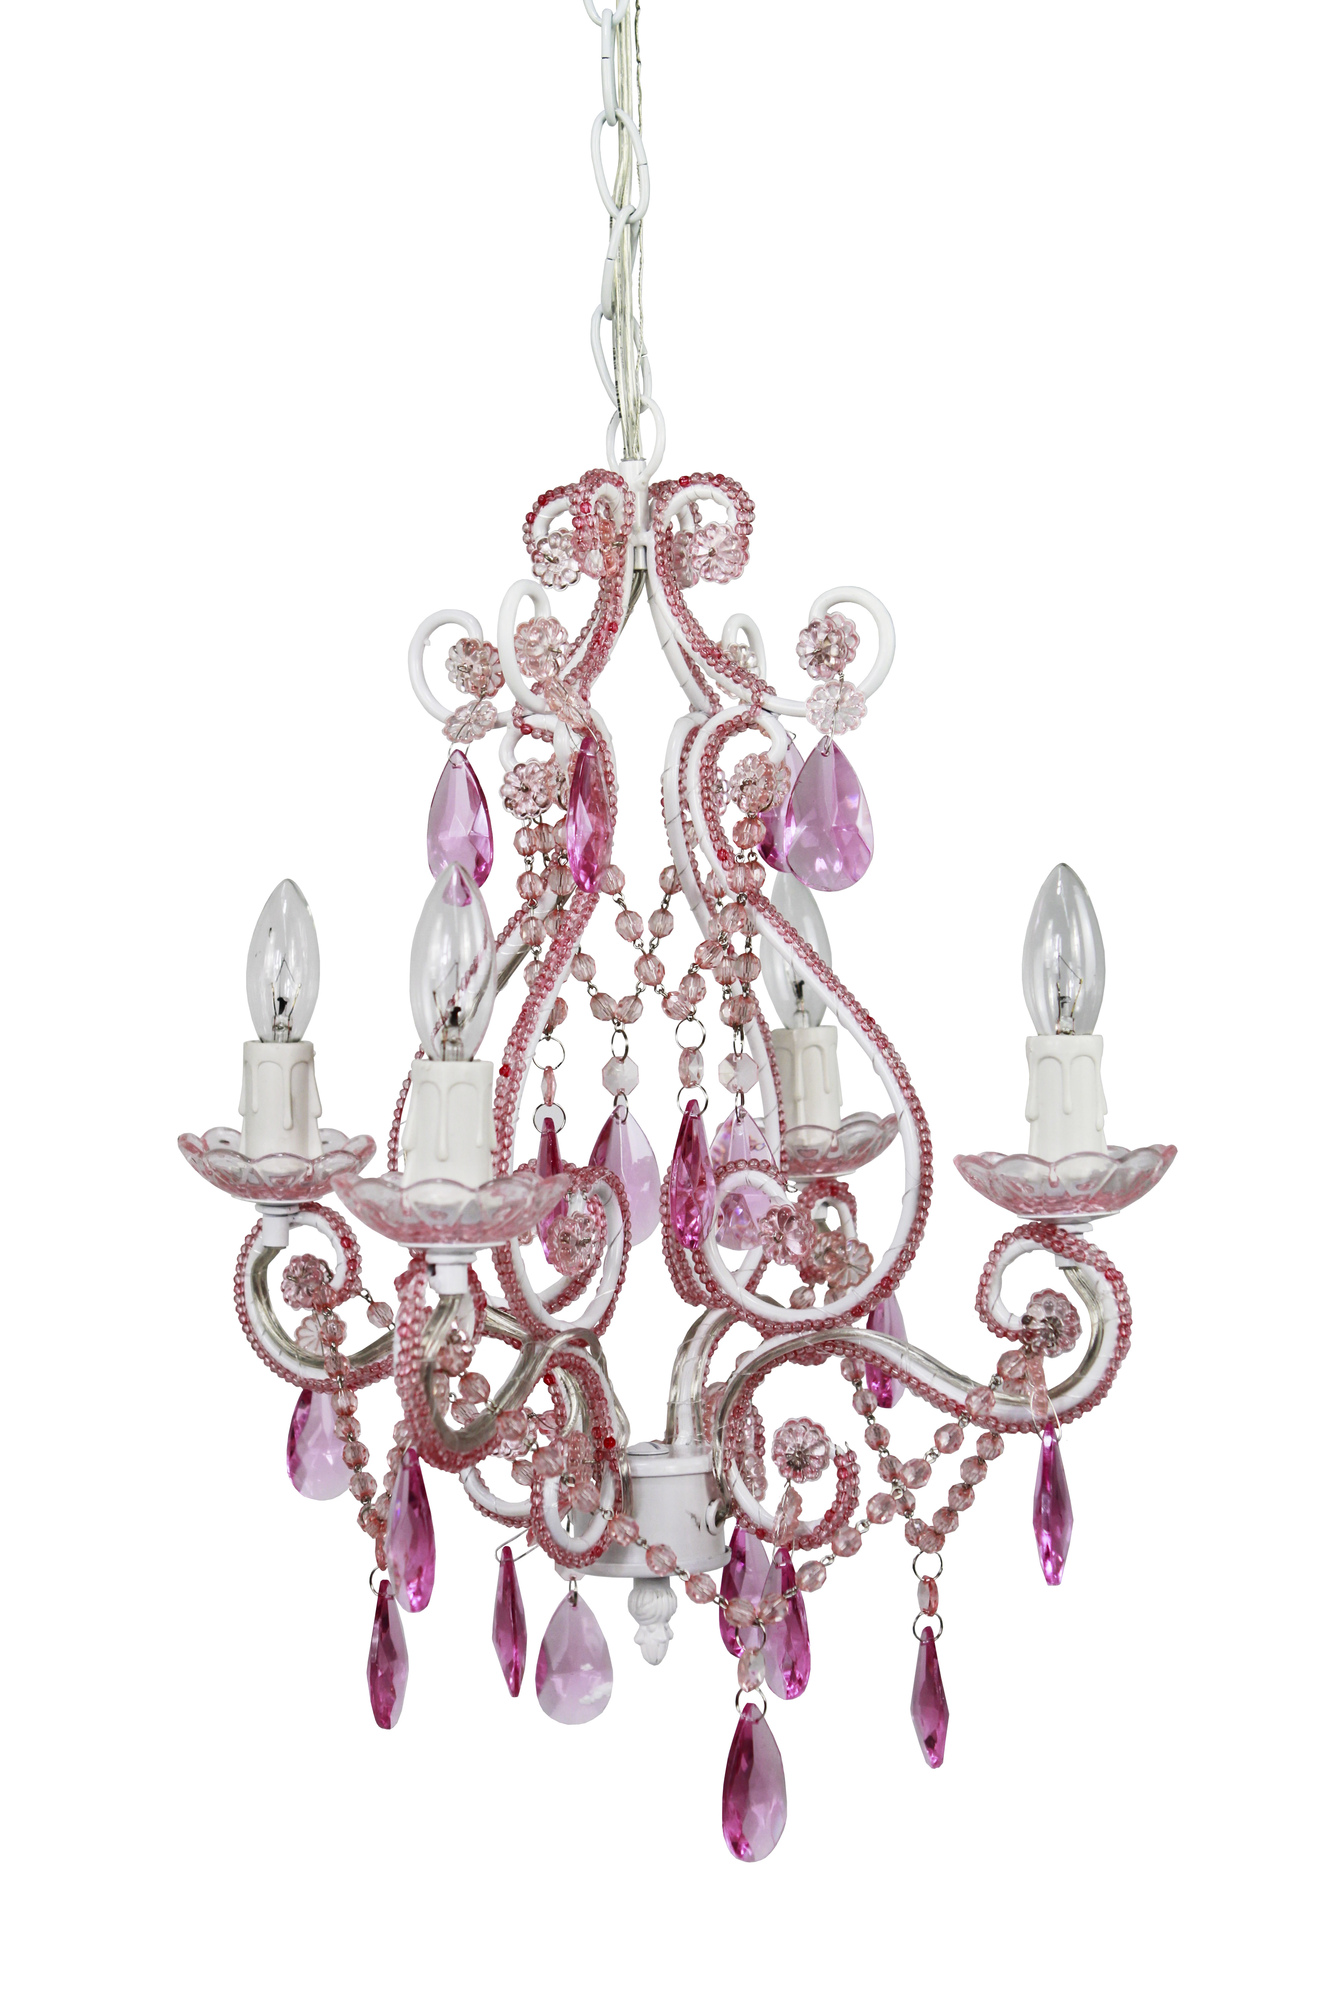 beautiful 4 bulb chandelier is the perfect finishing touch to any